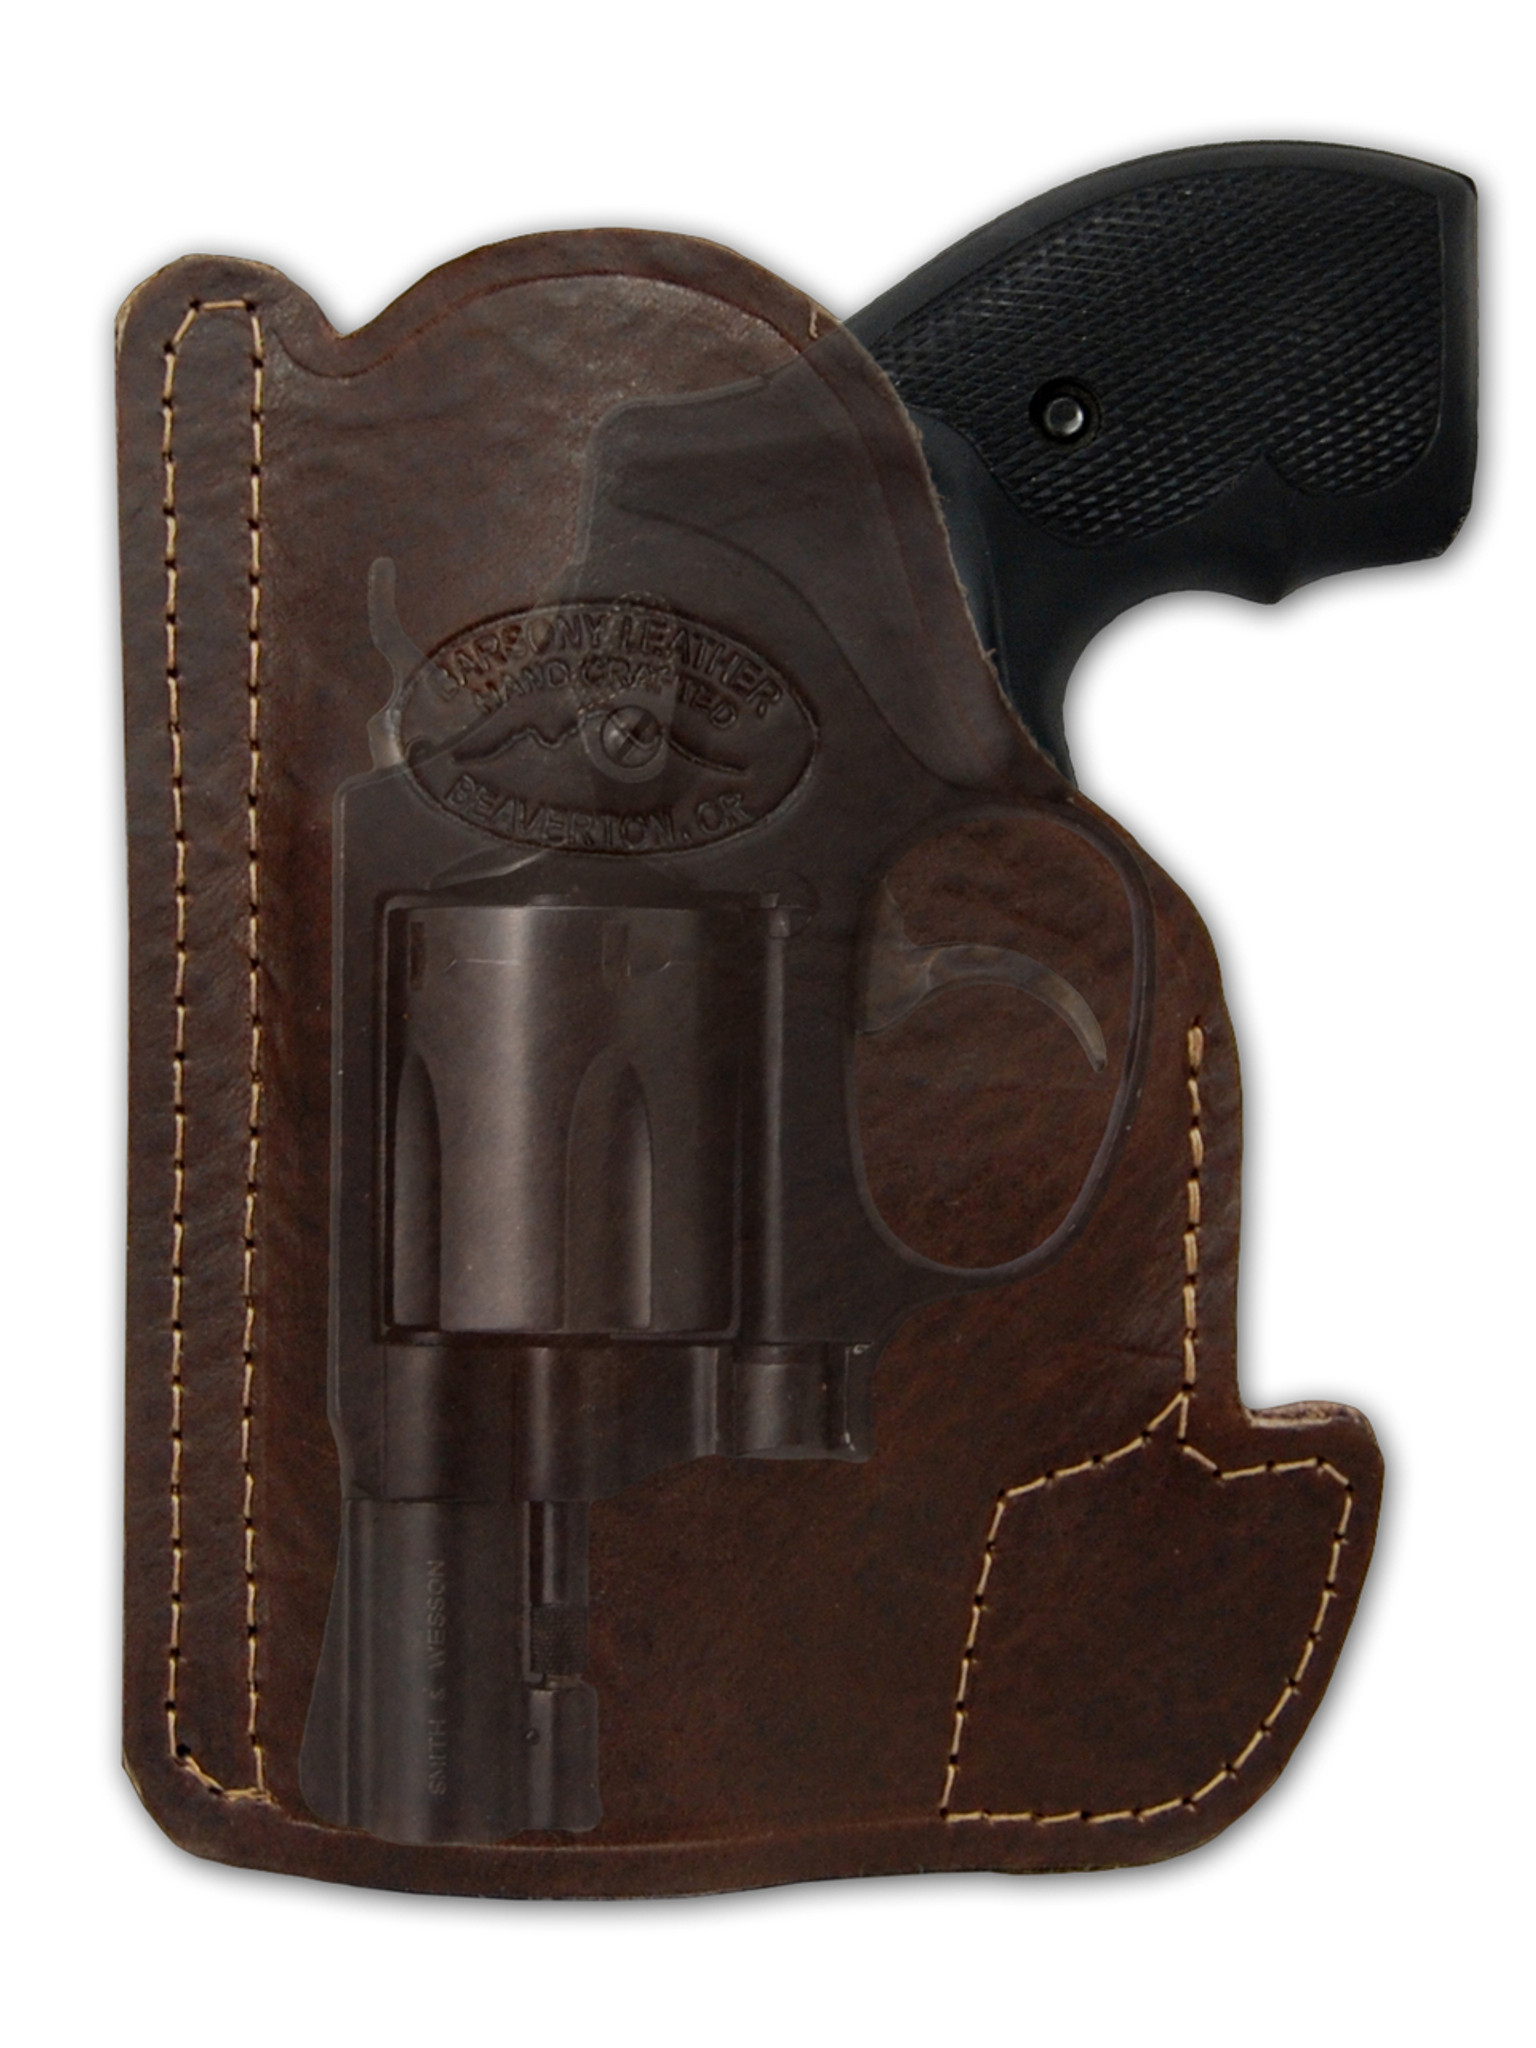 New Barsony Brown Leather Yaqui Holster Mag Pouch Smith /& Wesson M/&P Comp 9mm